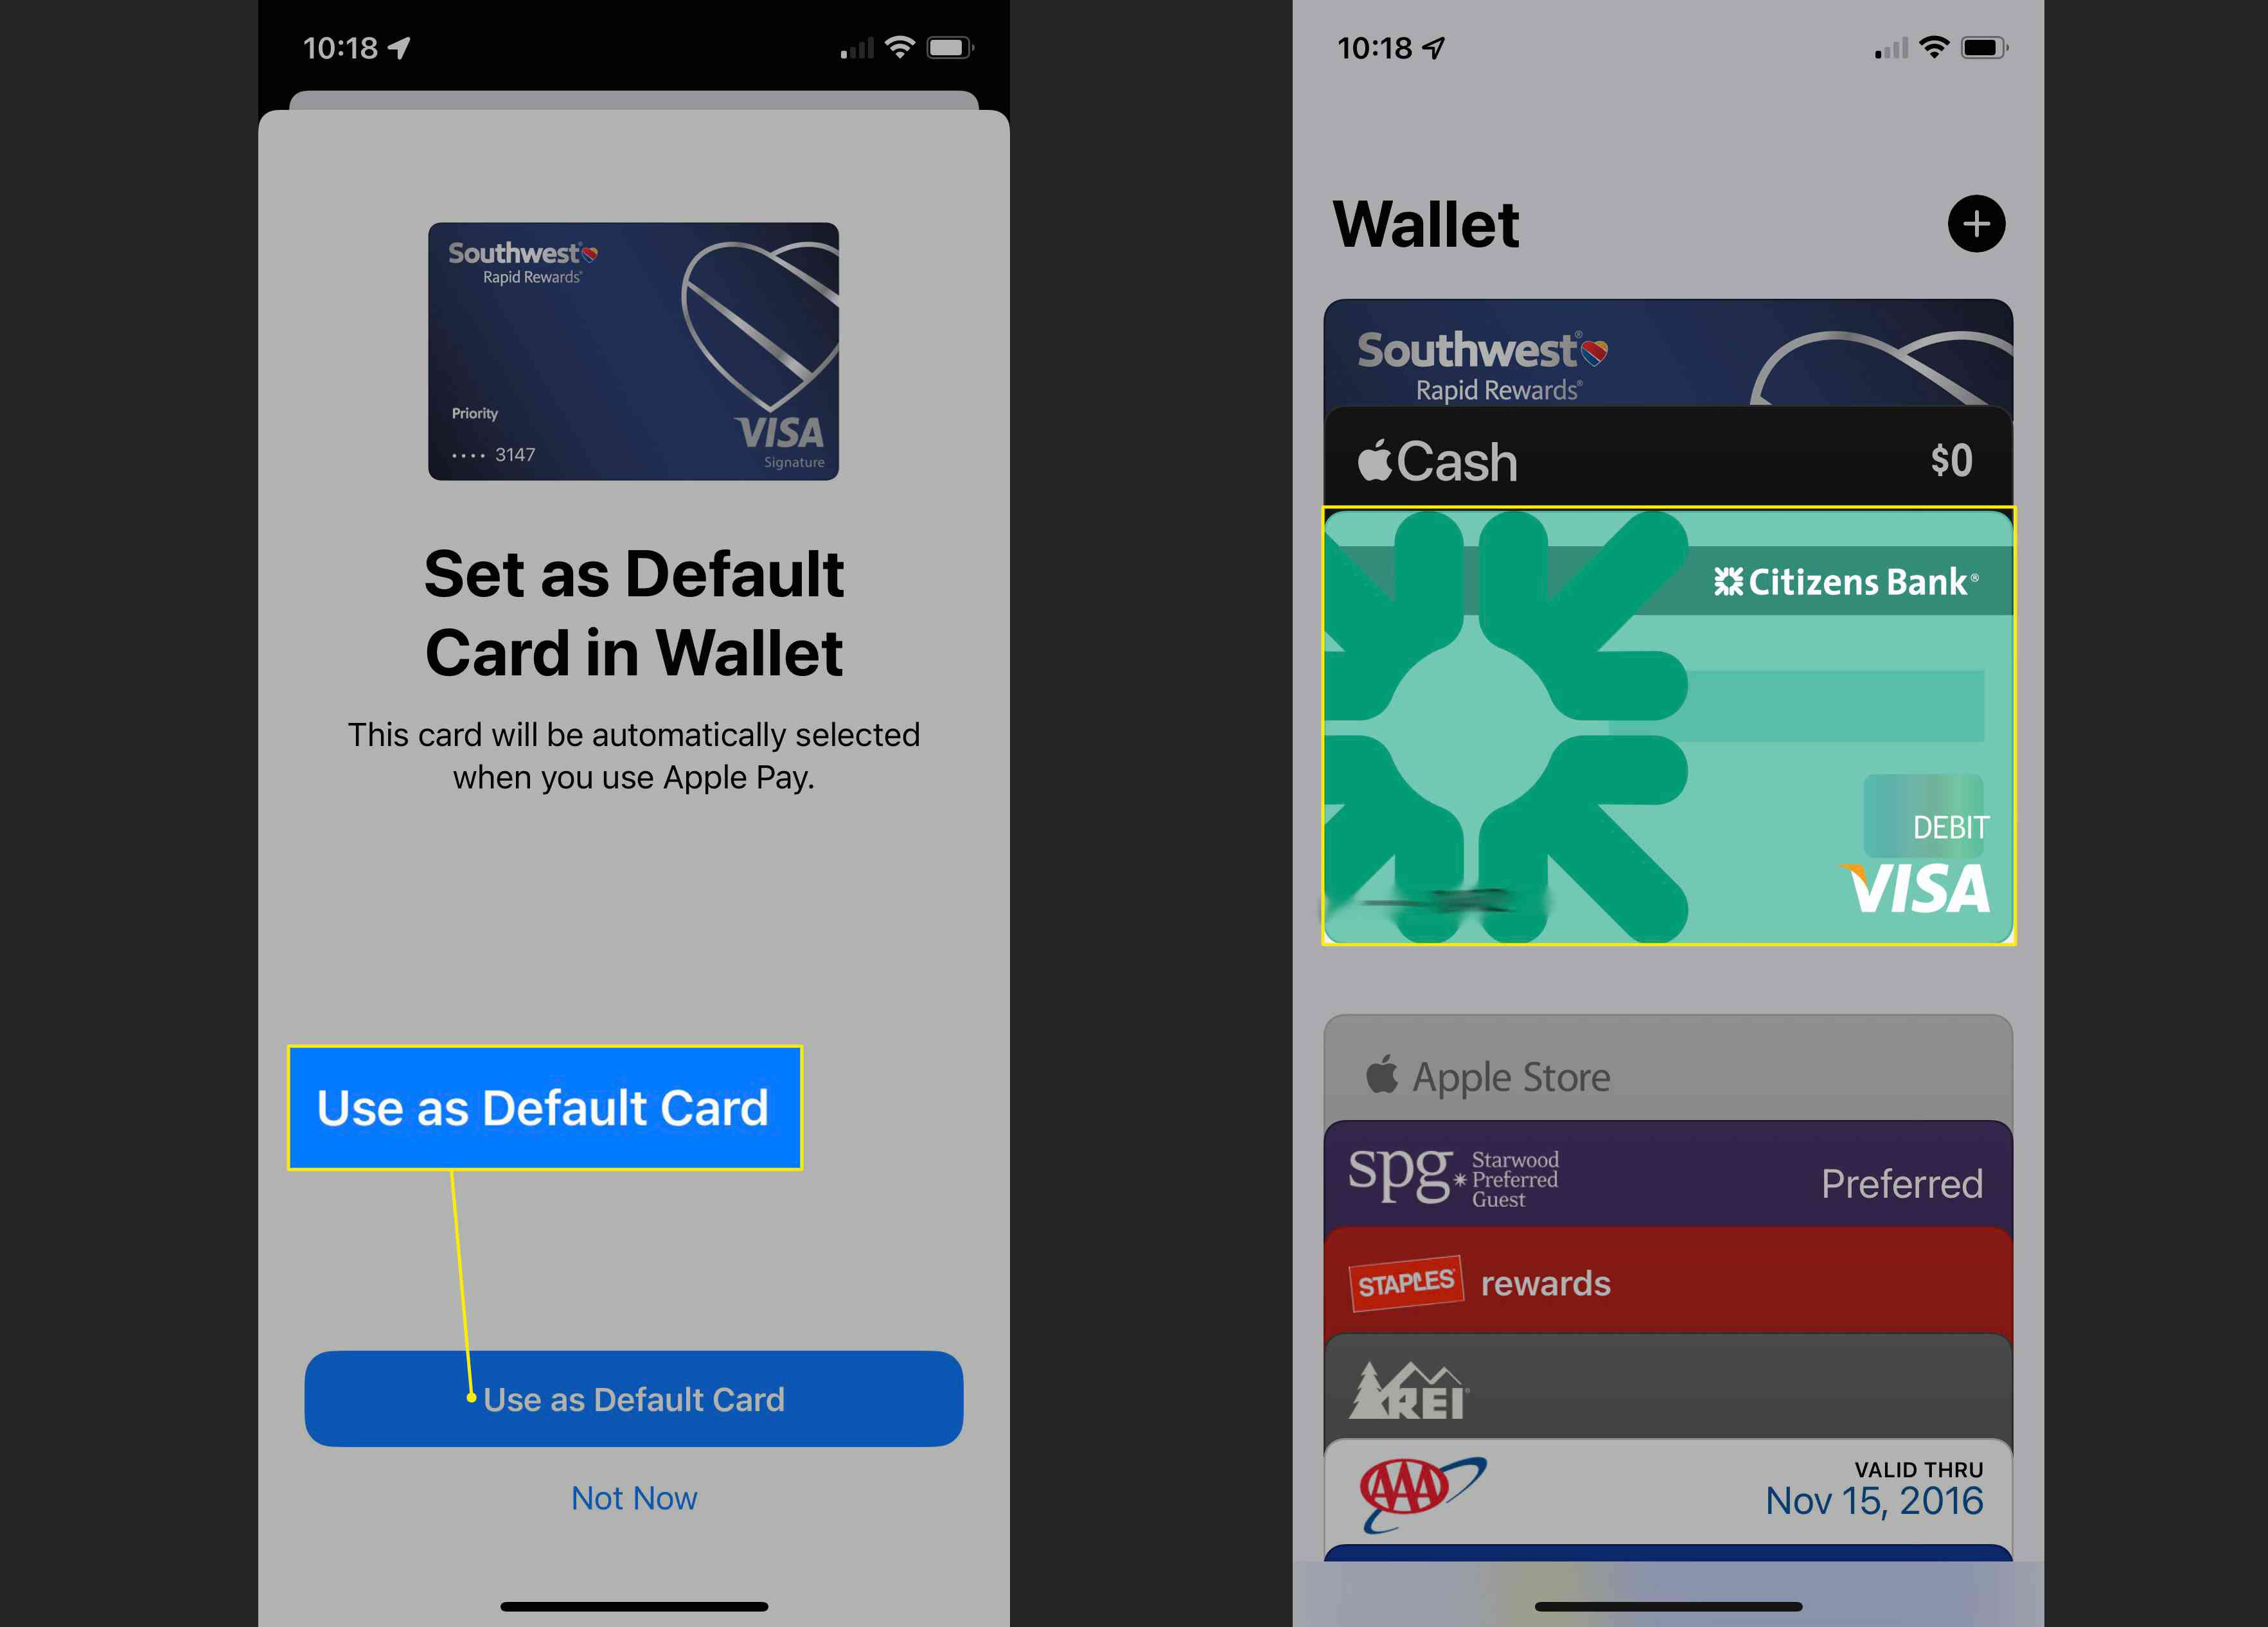 Use a Default Card and Visa Card highlighted in Apple Pay app